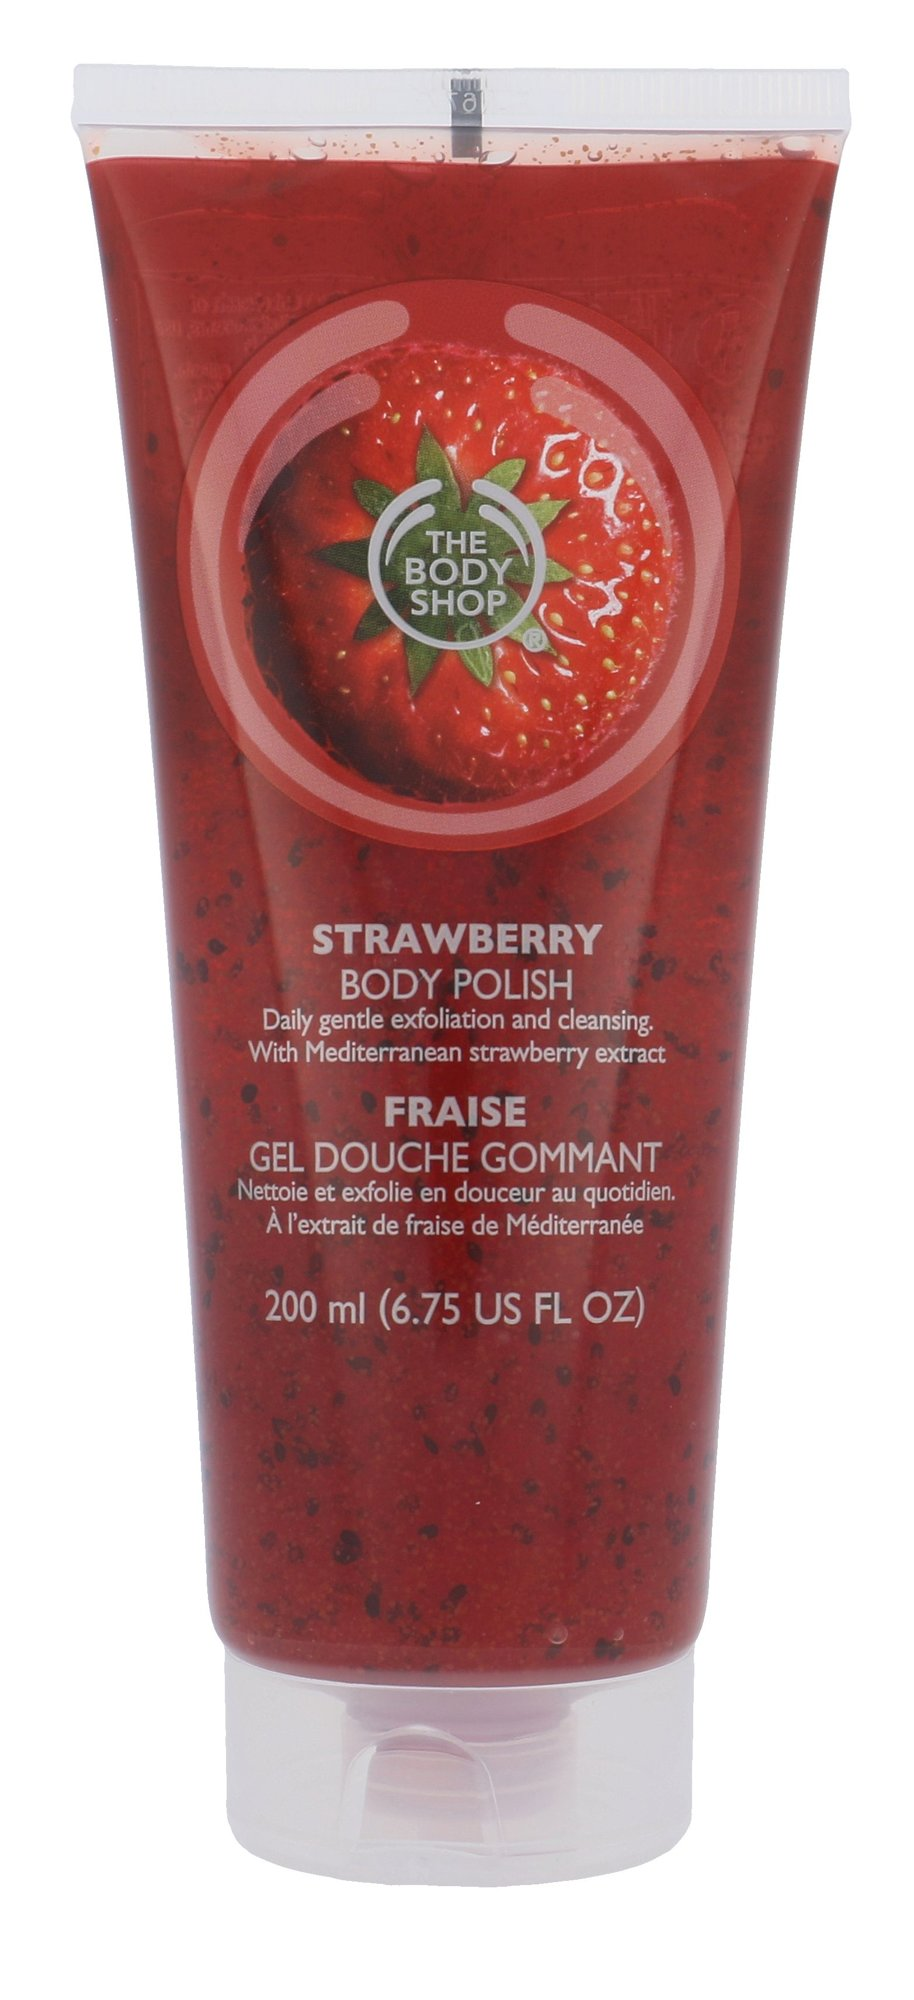 The Body Shop Strawberry Cosmetic 200ml